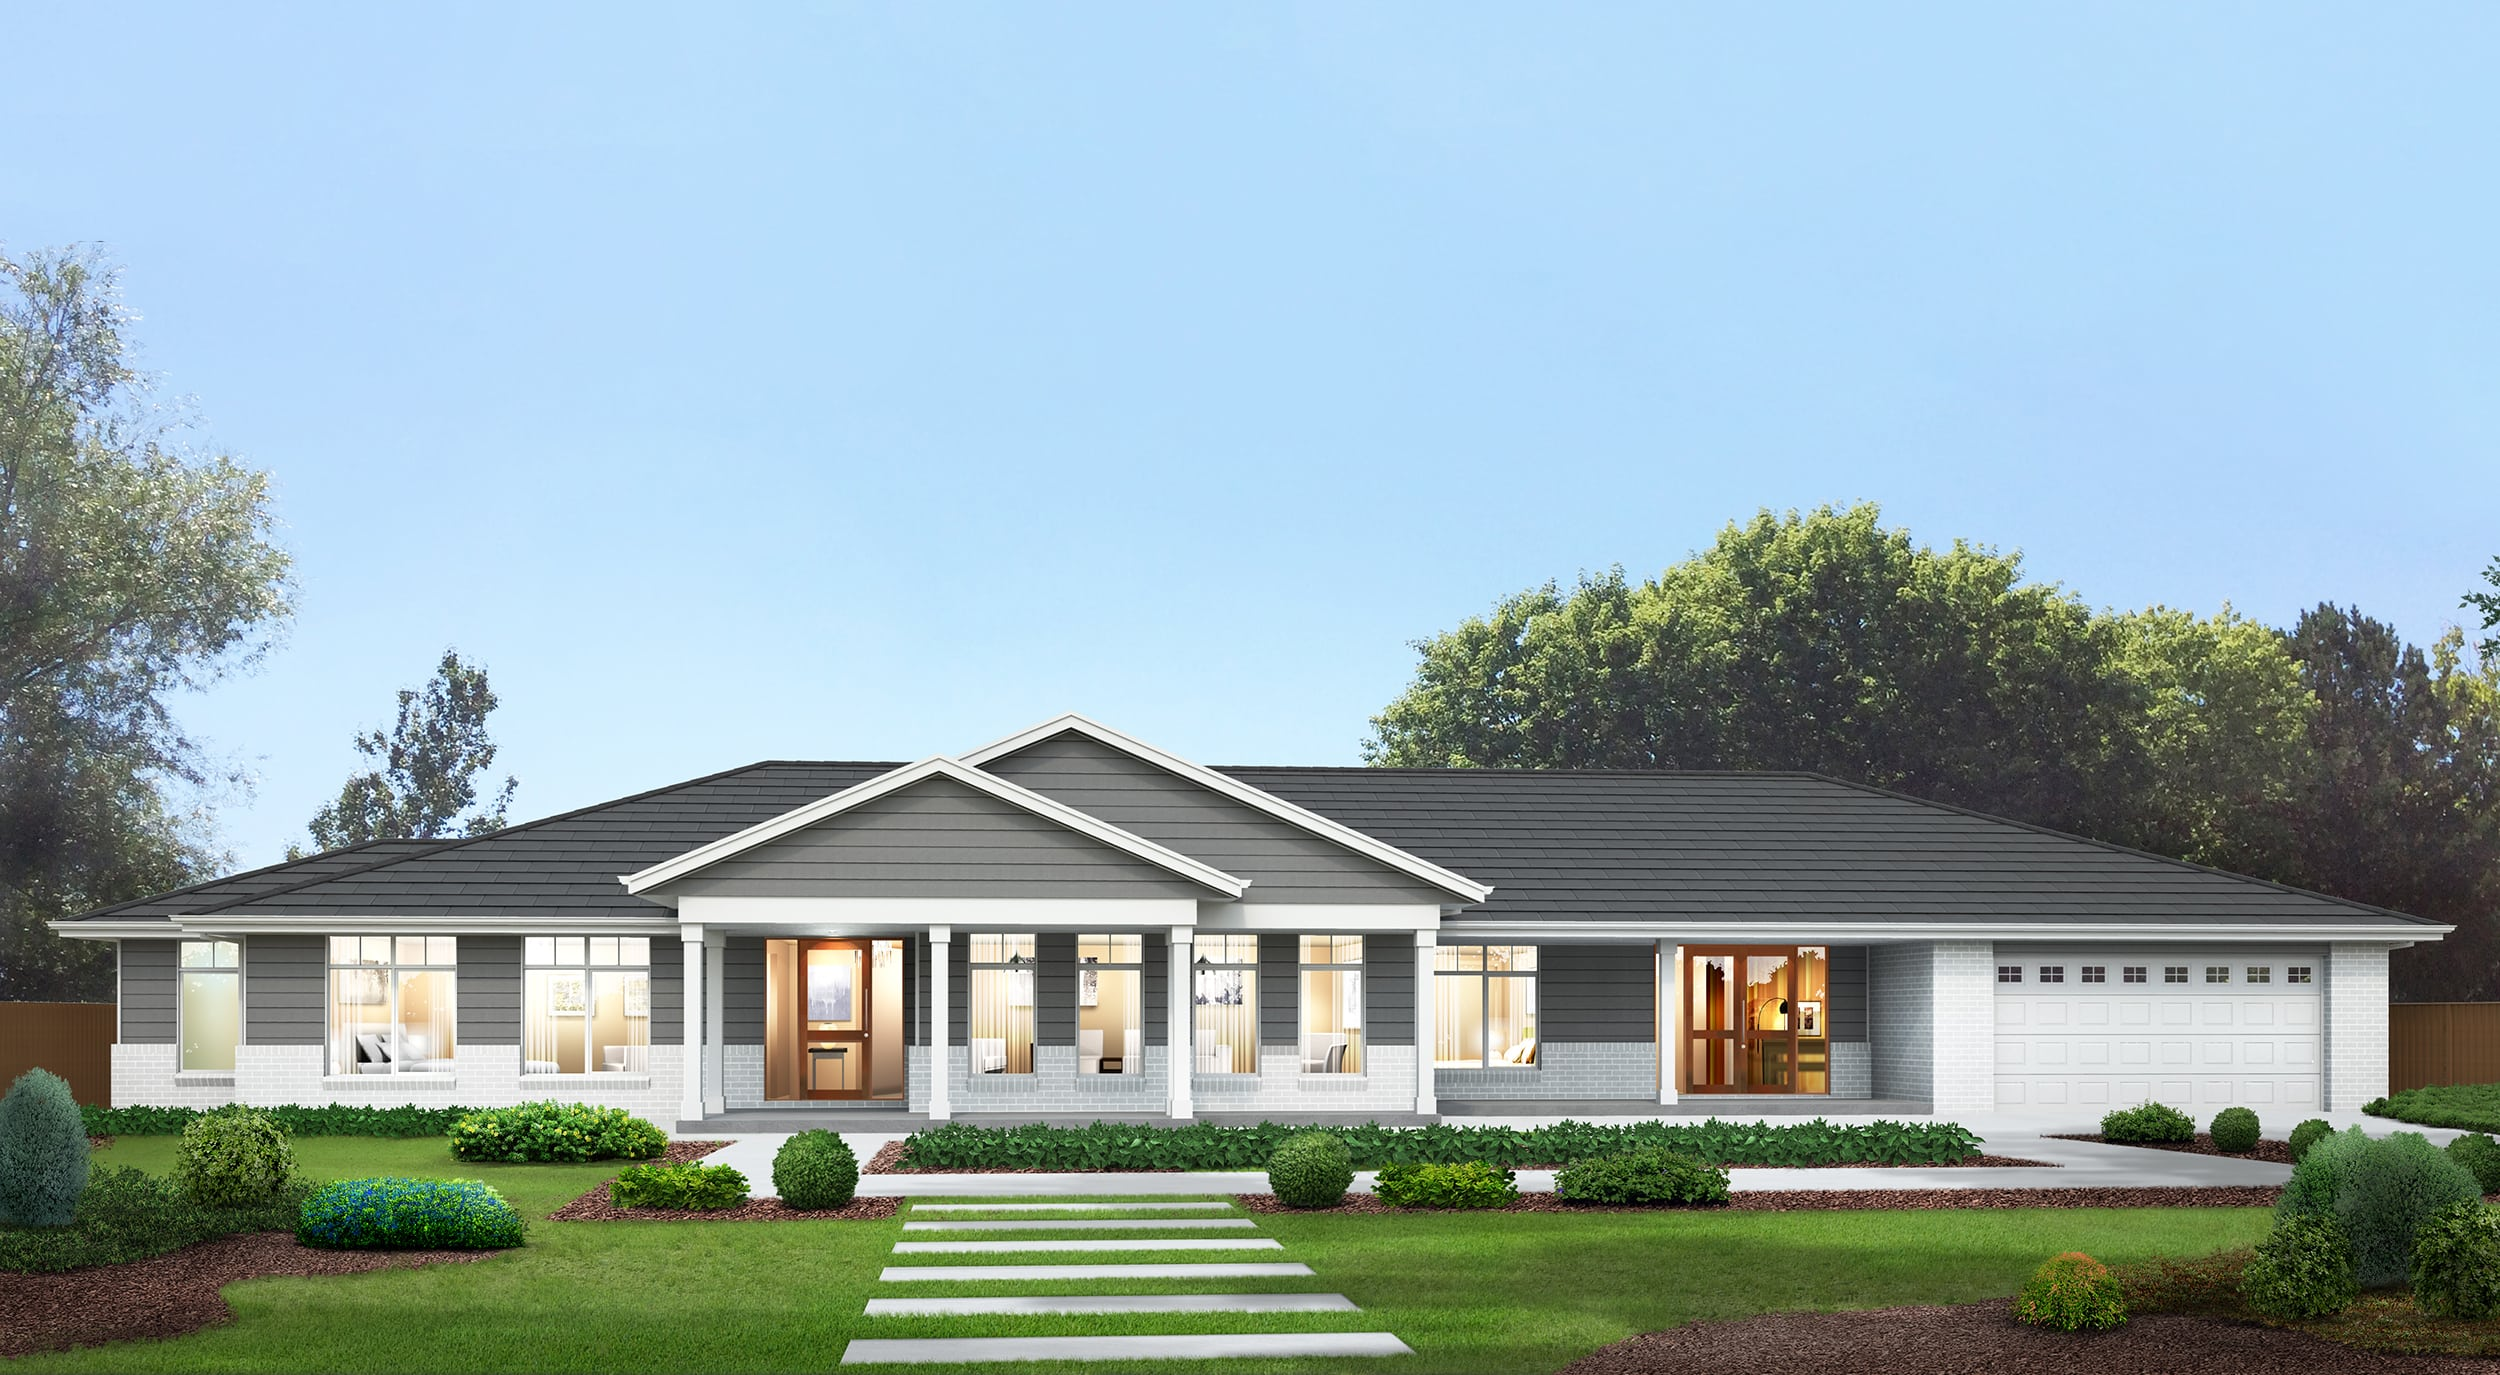 Hamptons facade shown with 24° tiled roof pitch and right-hand garage